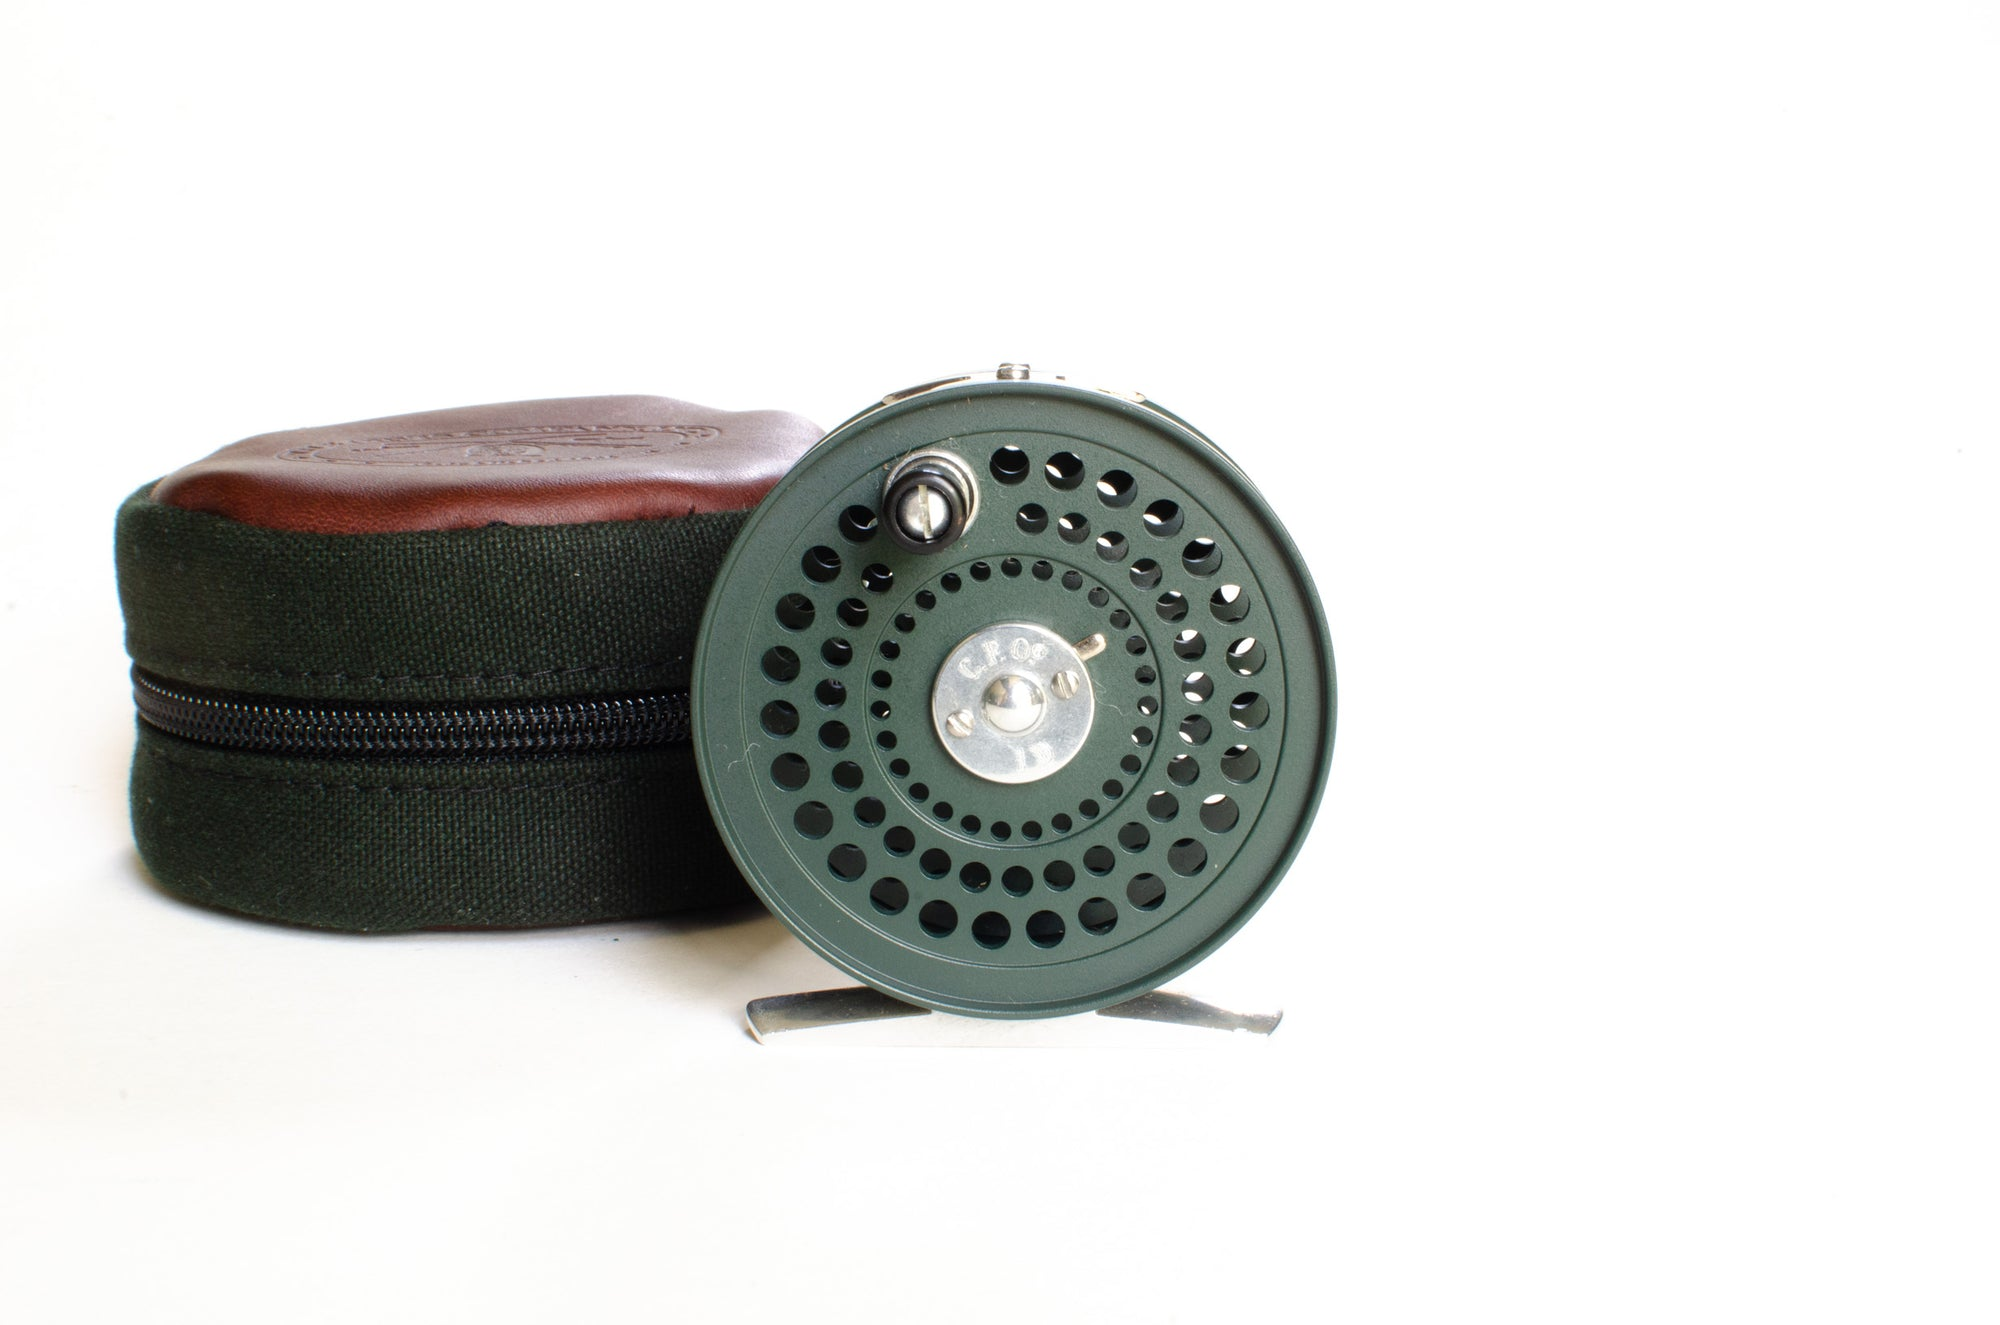 Orvis CFO Disc 1 Fly Reel